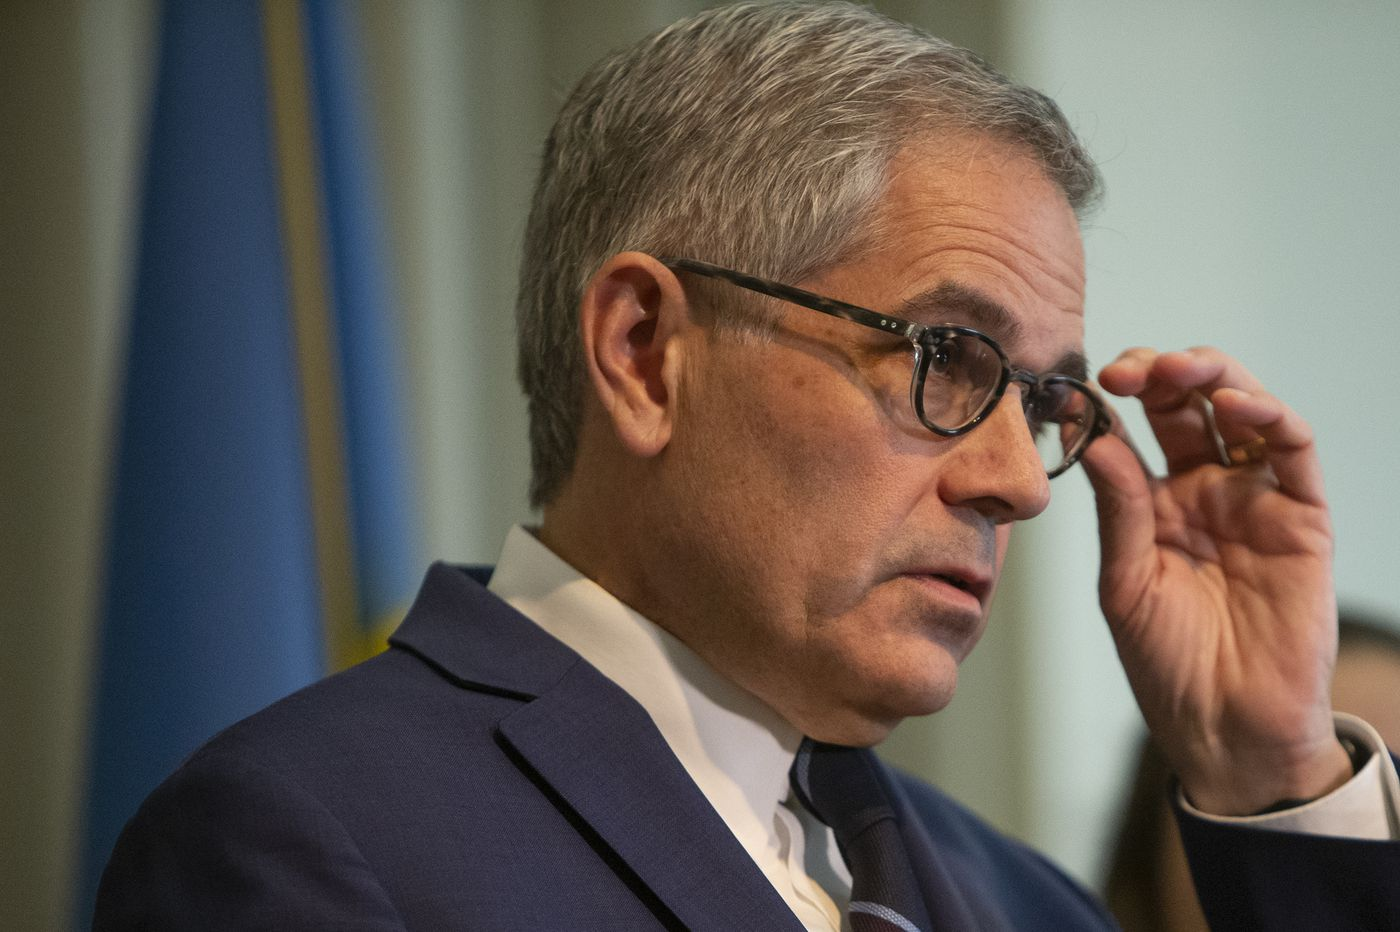 Report: DA Krasner 'very close' to rolling out policy decriminalizing drug possession